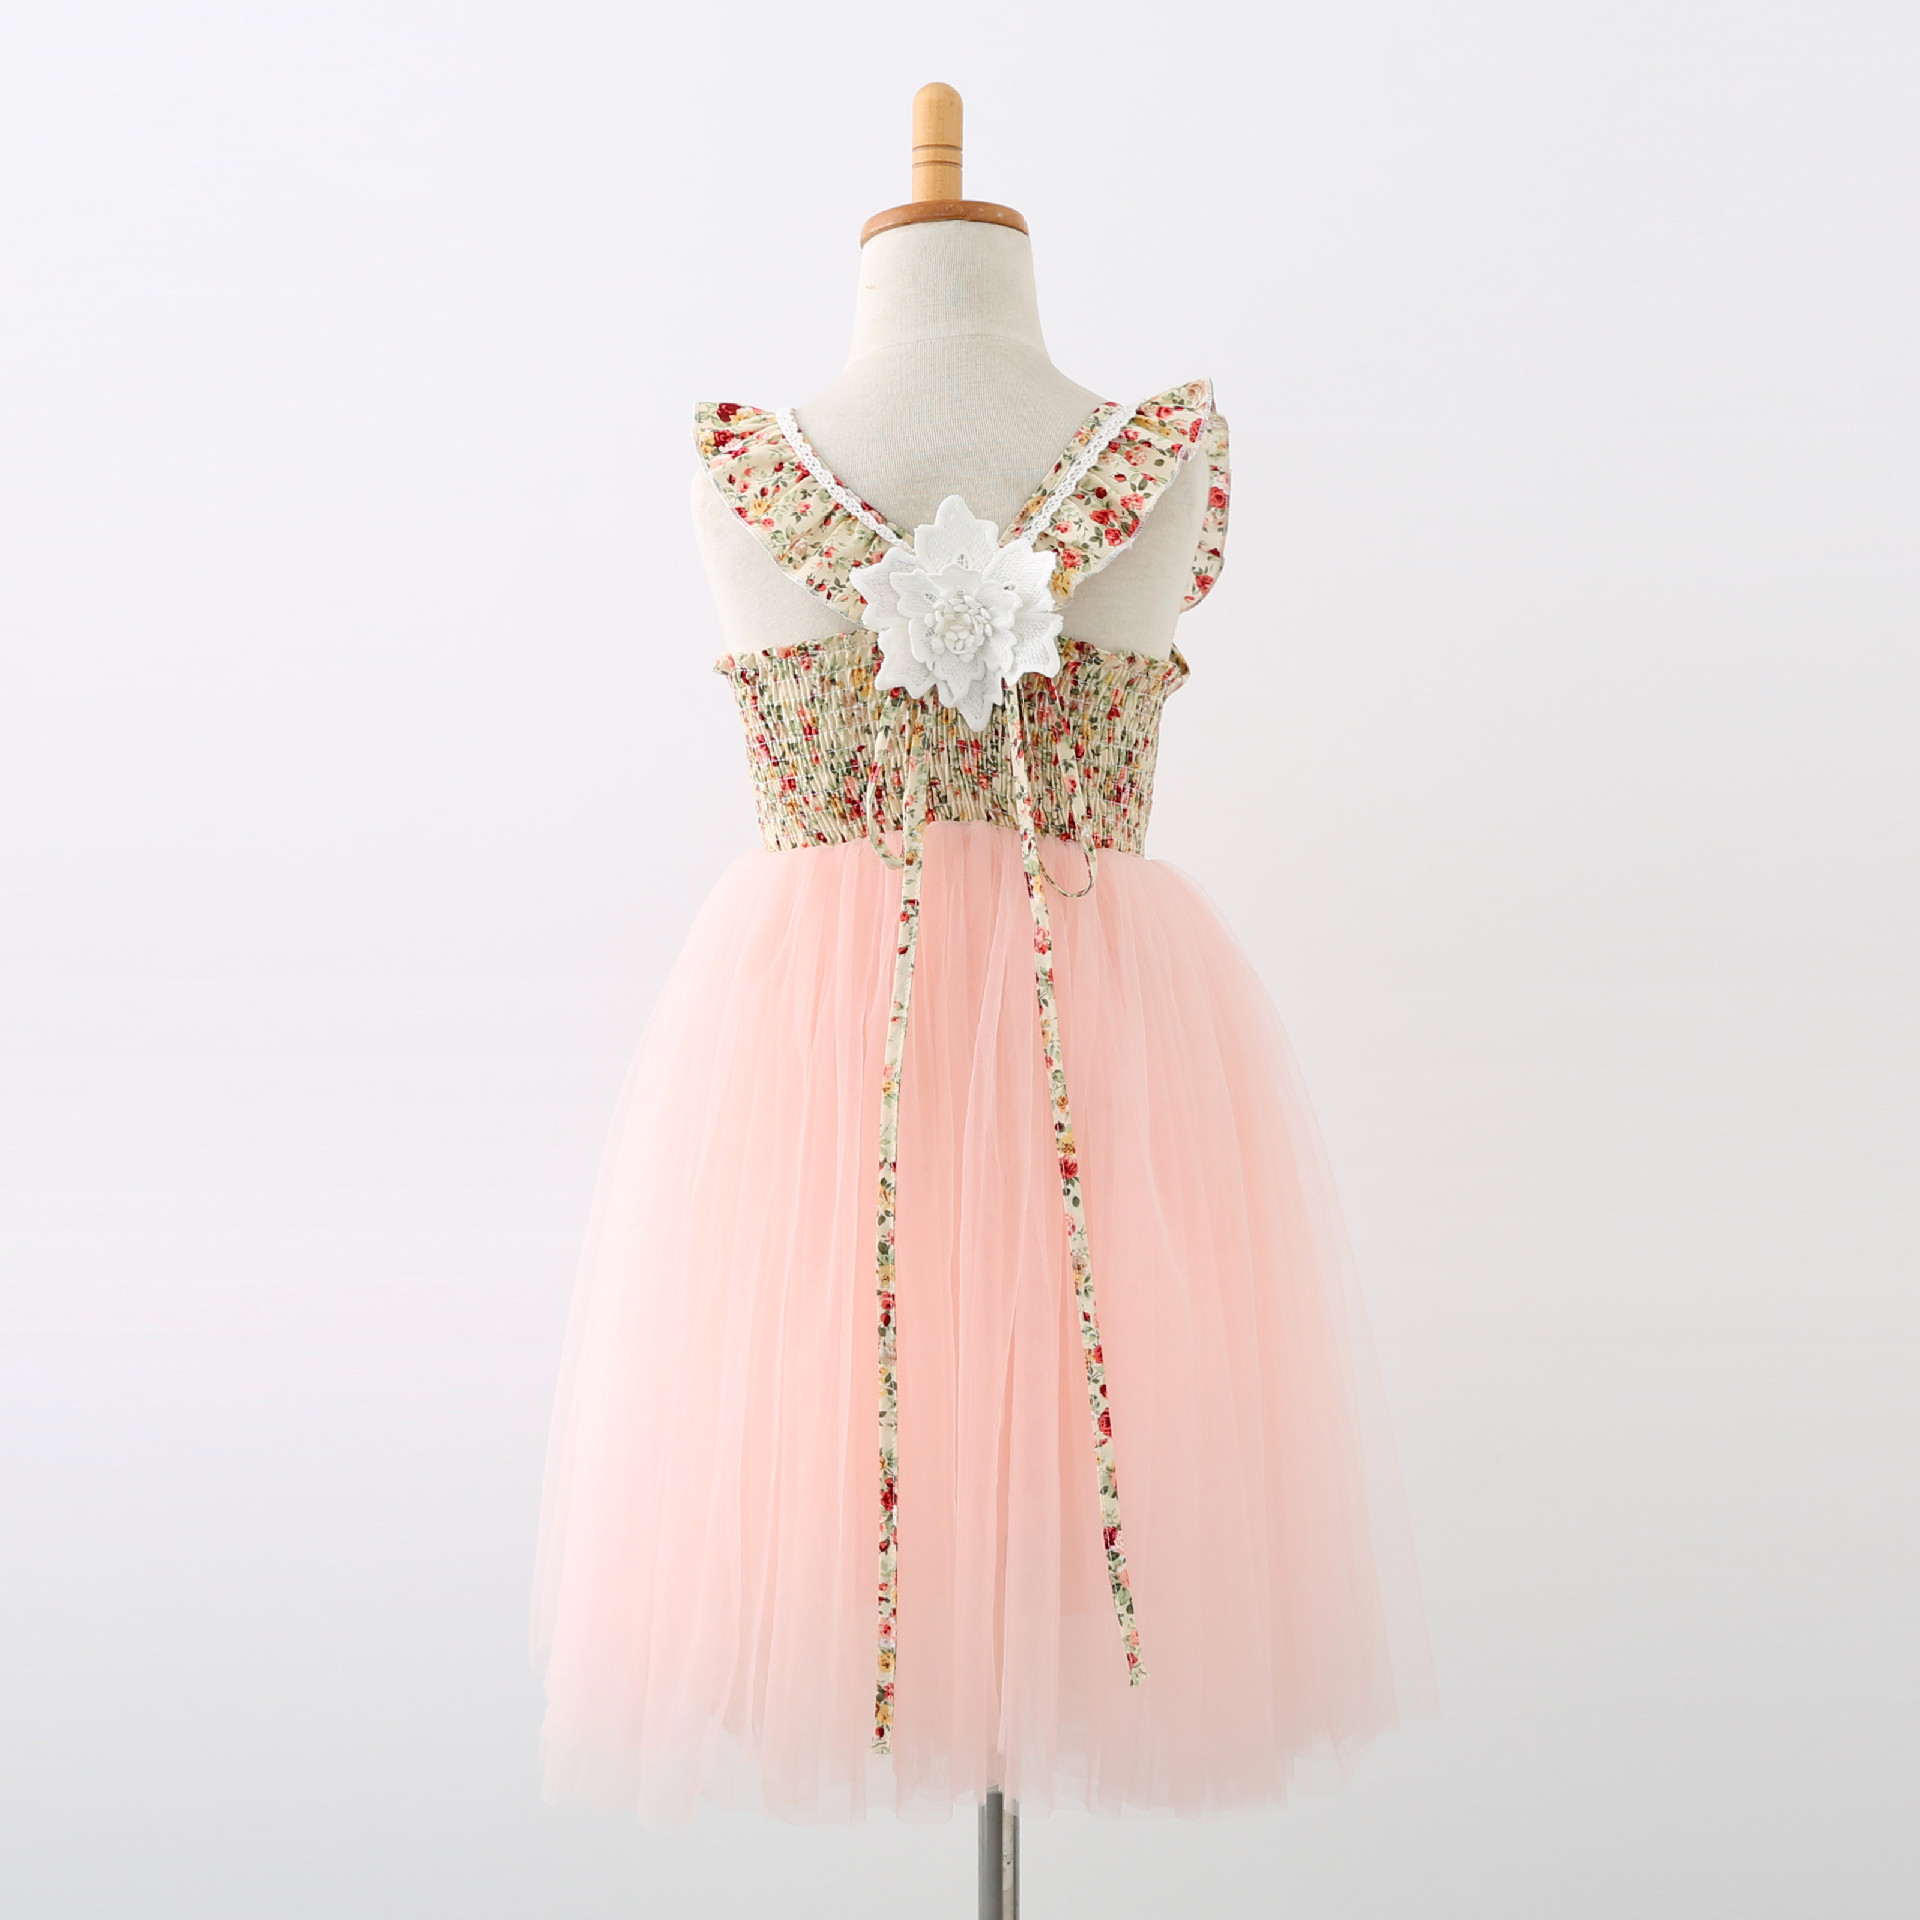 New Ins European and American Children's Princess Dress Girls' Performance Wedding Dress Girls Fashion Tutu Dresses ankle length-in Dresses from Mother & Kids    2